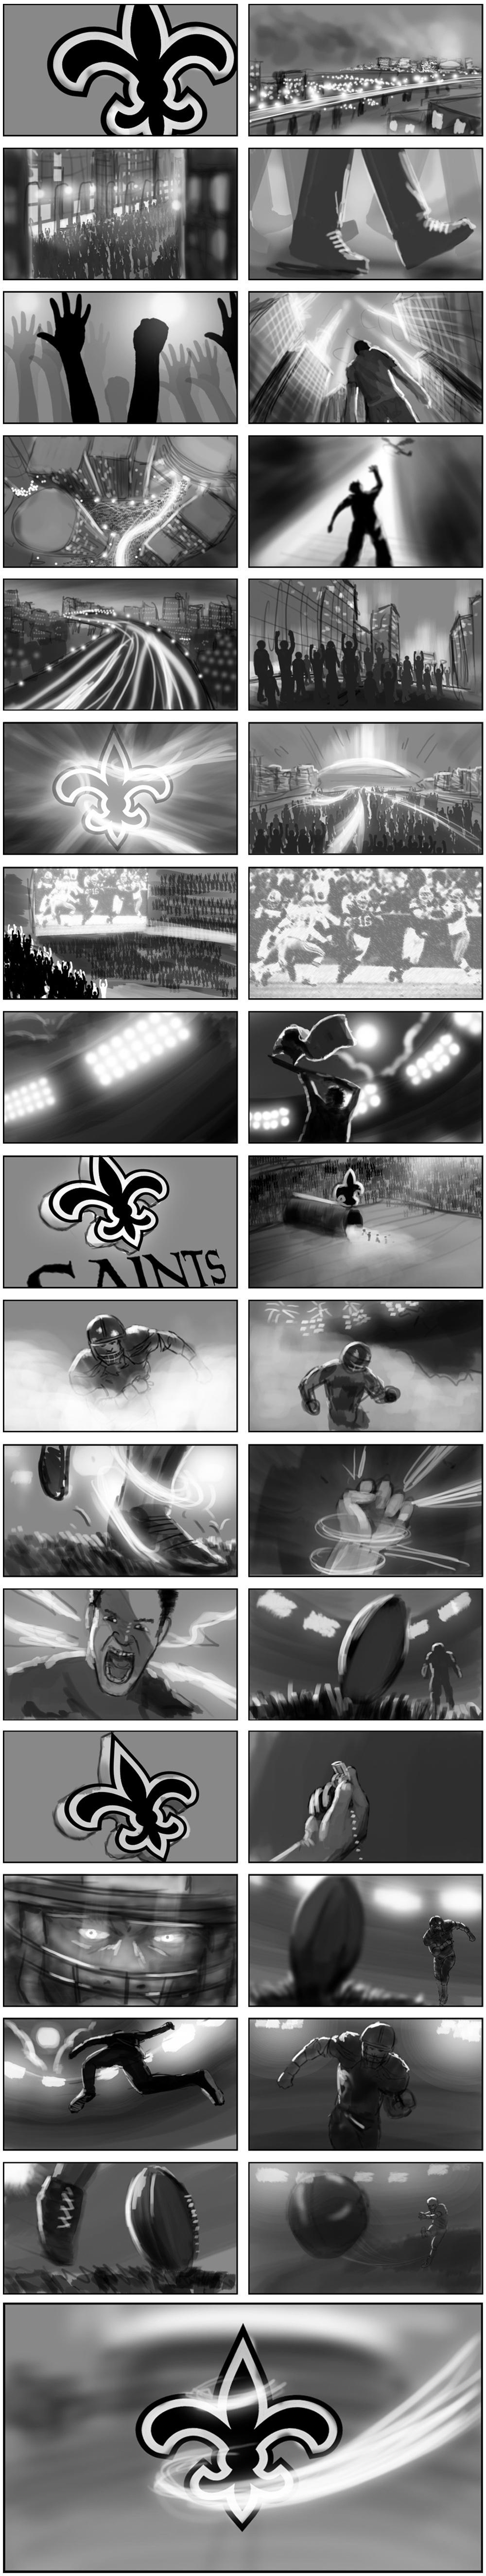 New Orleans Saints Storyboard